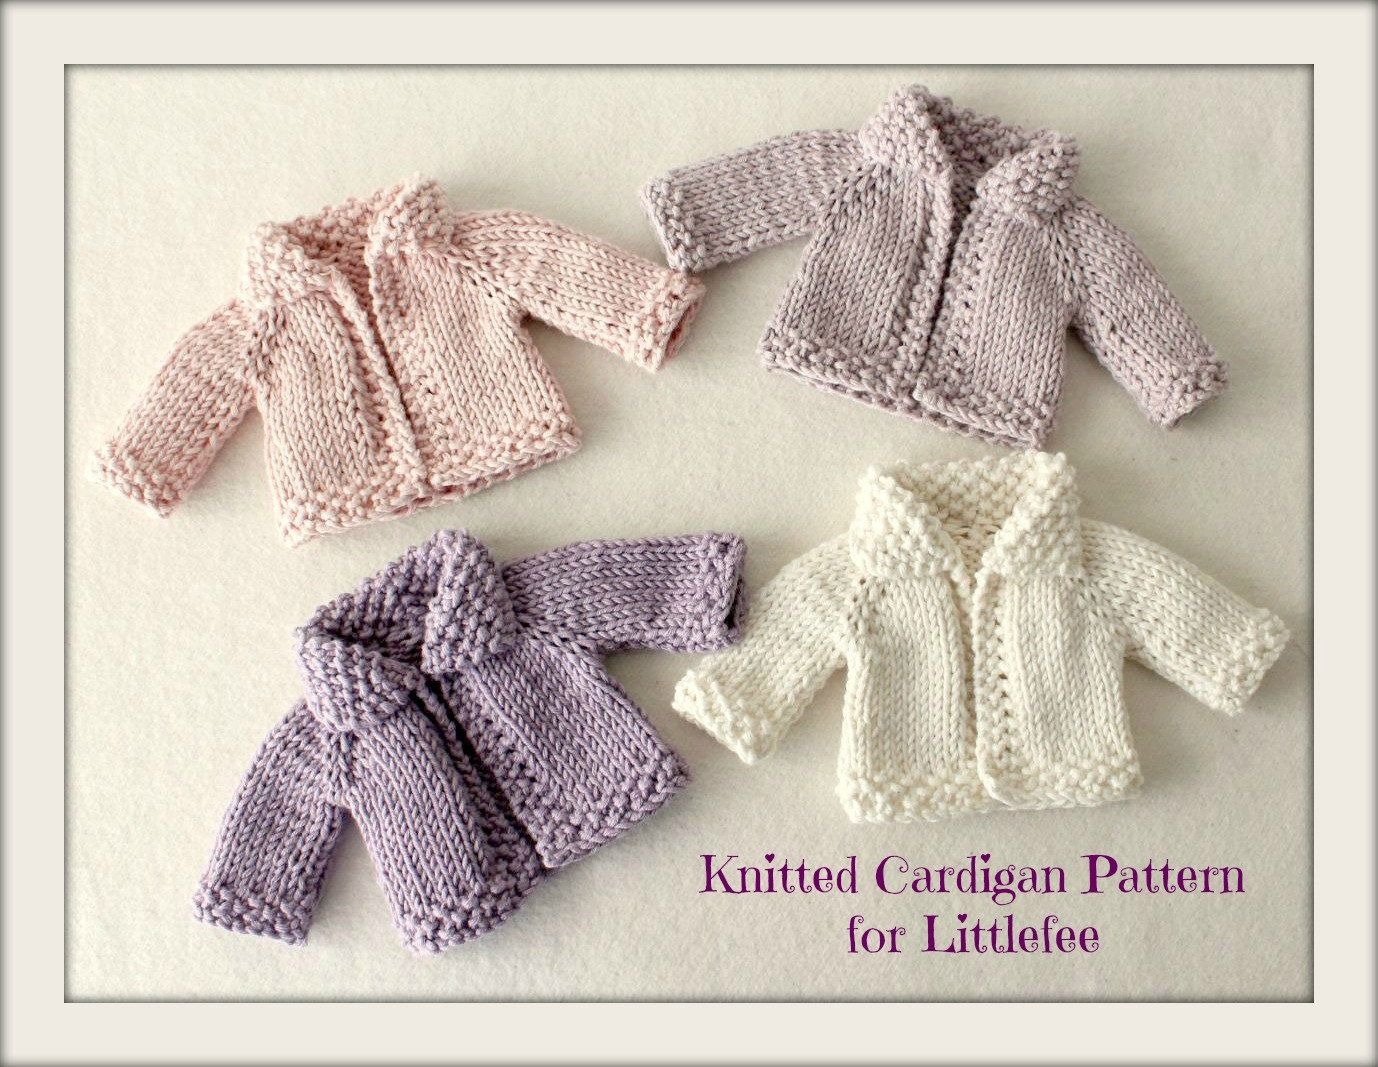 Instant Download PDF Knitted Cardigan Pattern for Littlefee | Knit ...